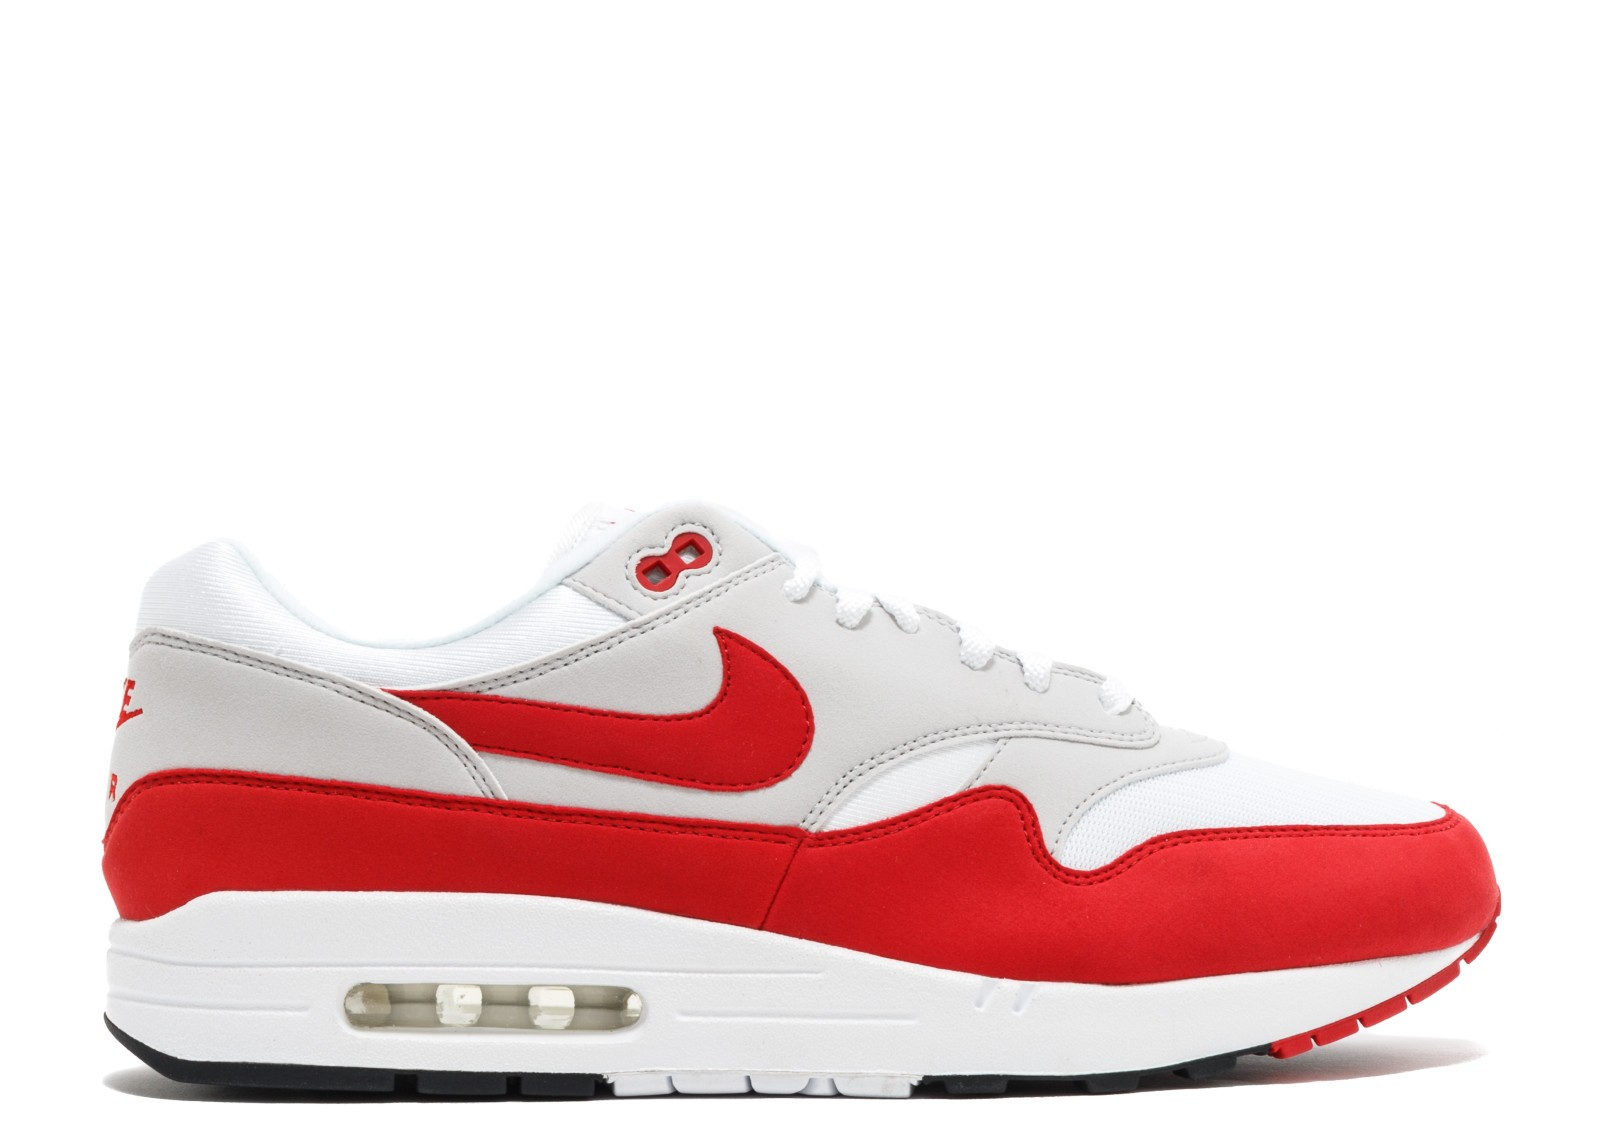 Nike Air Max 1 Anniversary Wit/Rood 908375-100